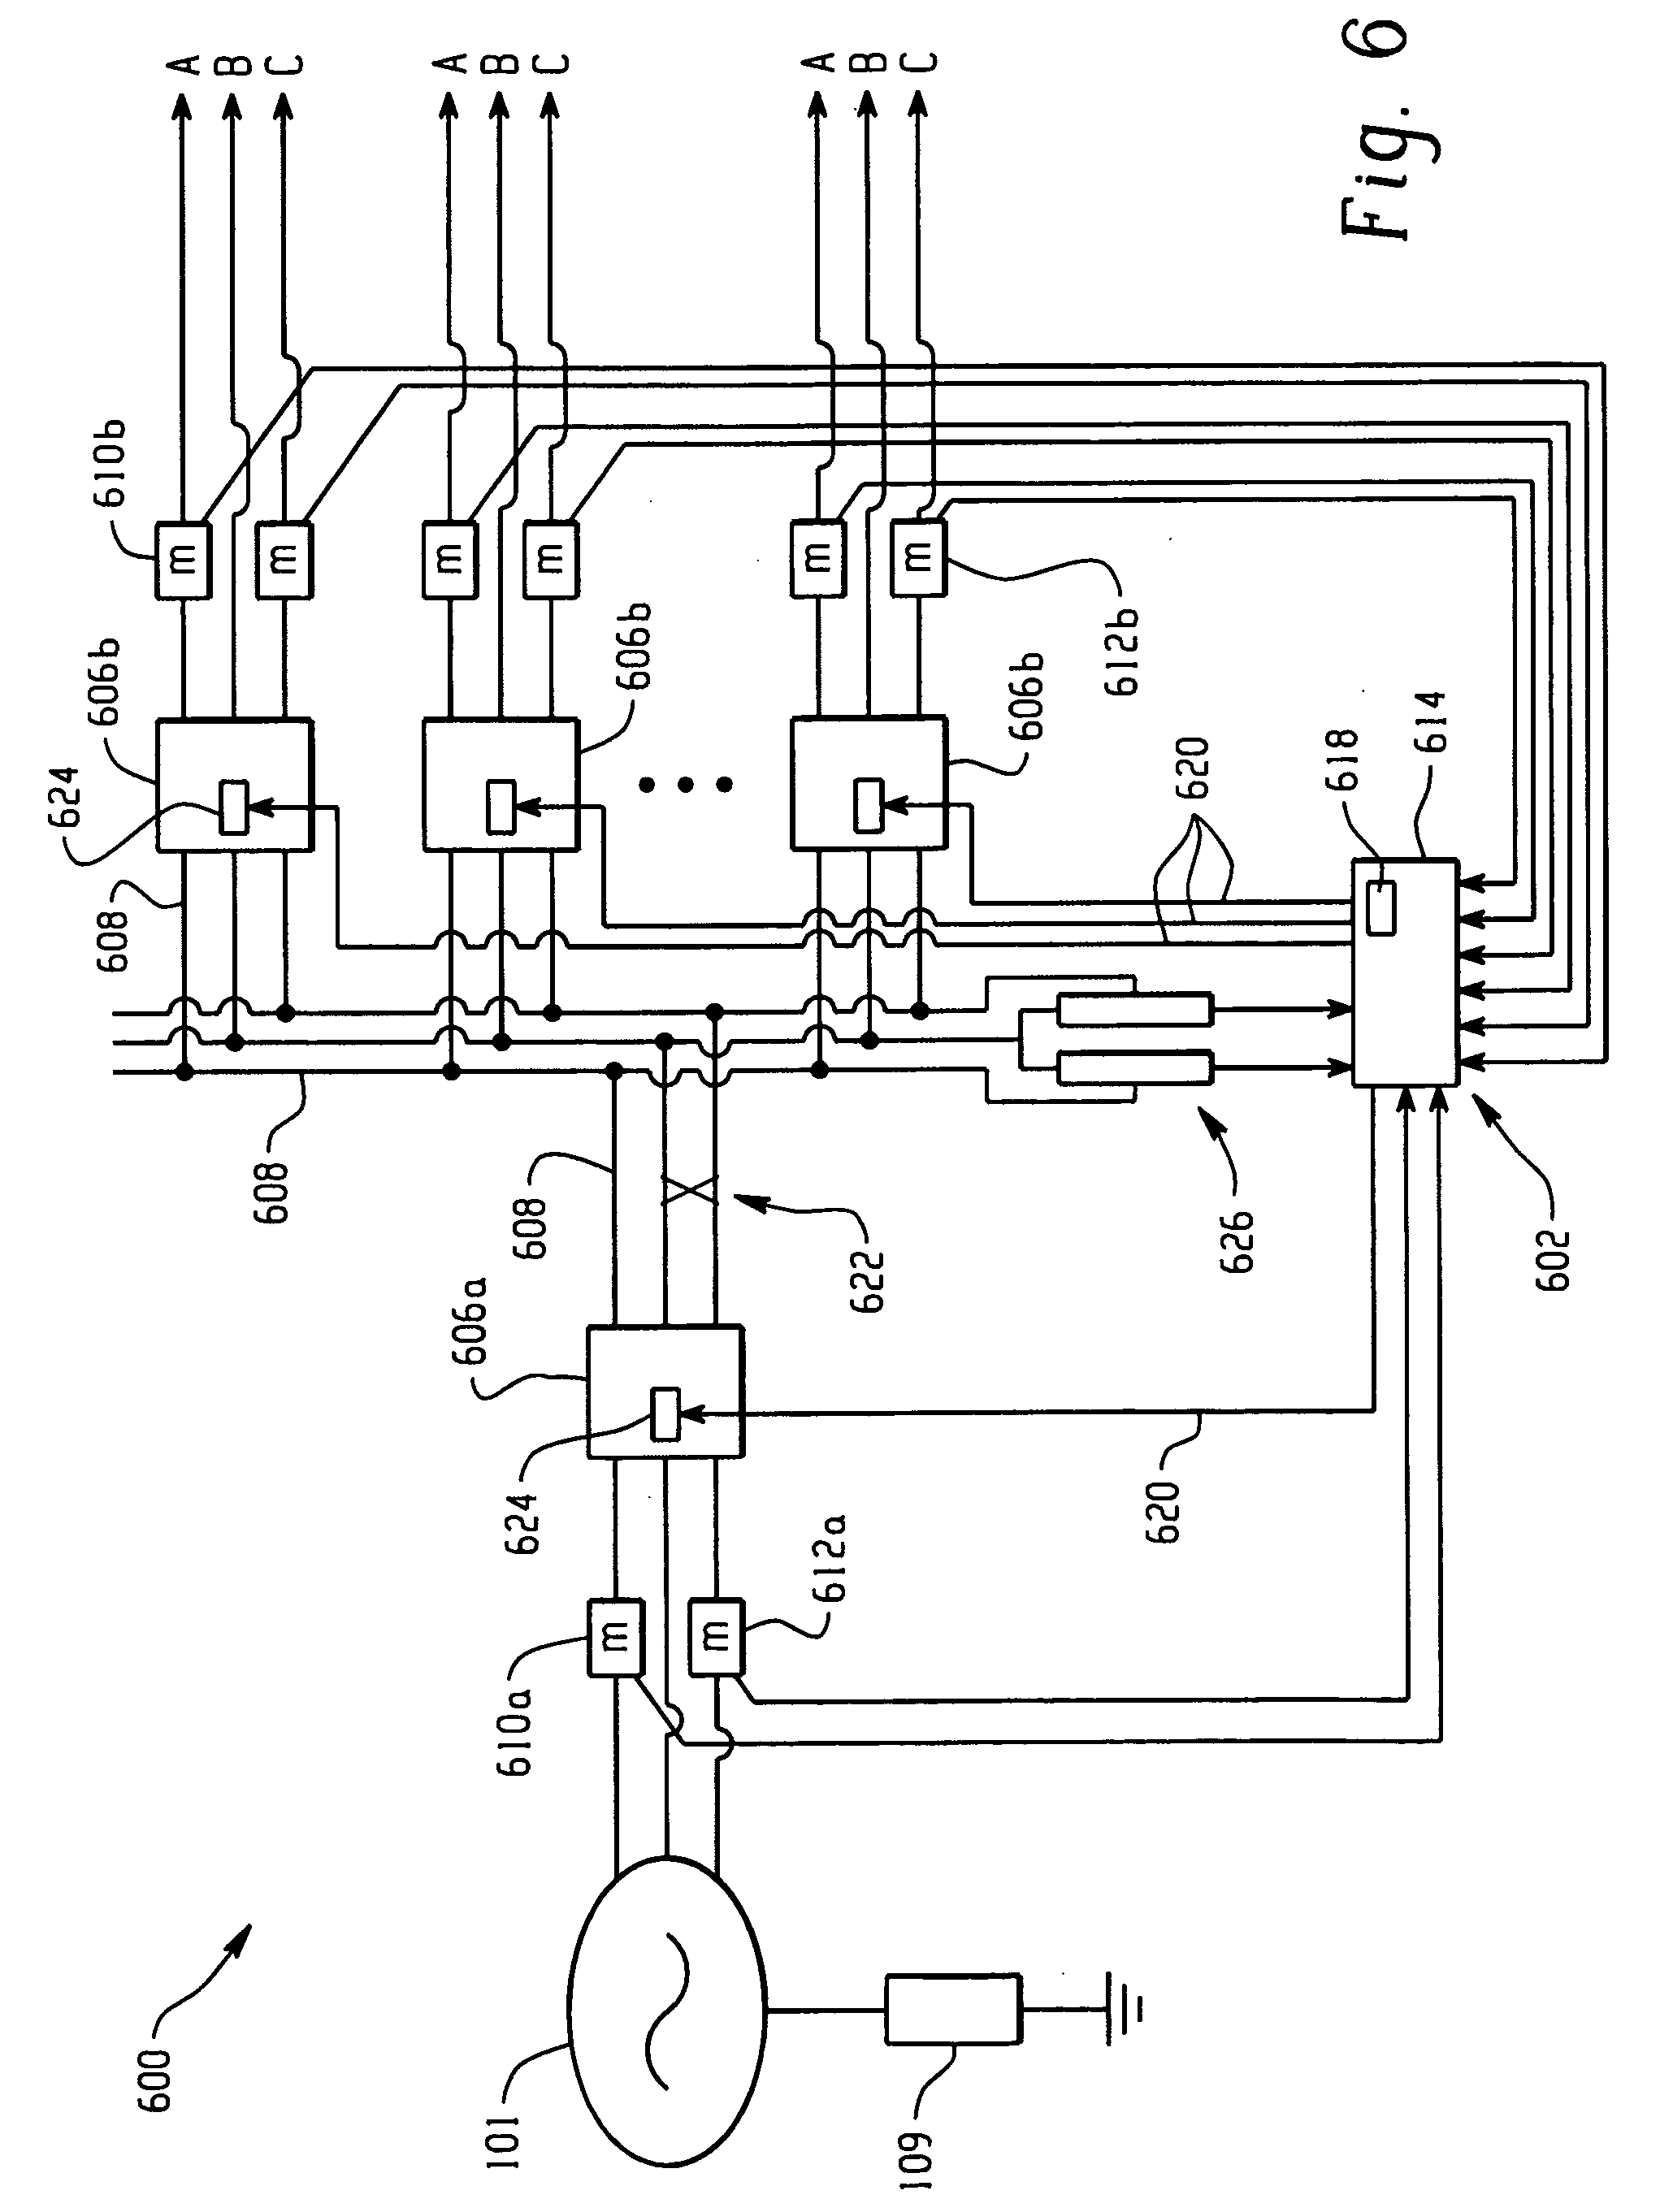 single phase reversing contactor wiring diagram mercruiser water meter for abb